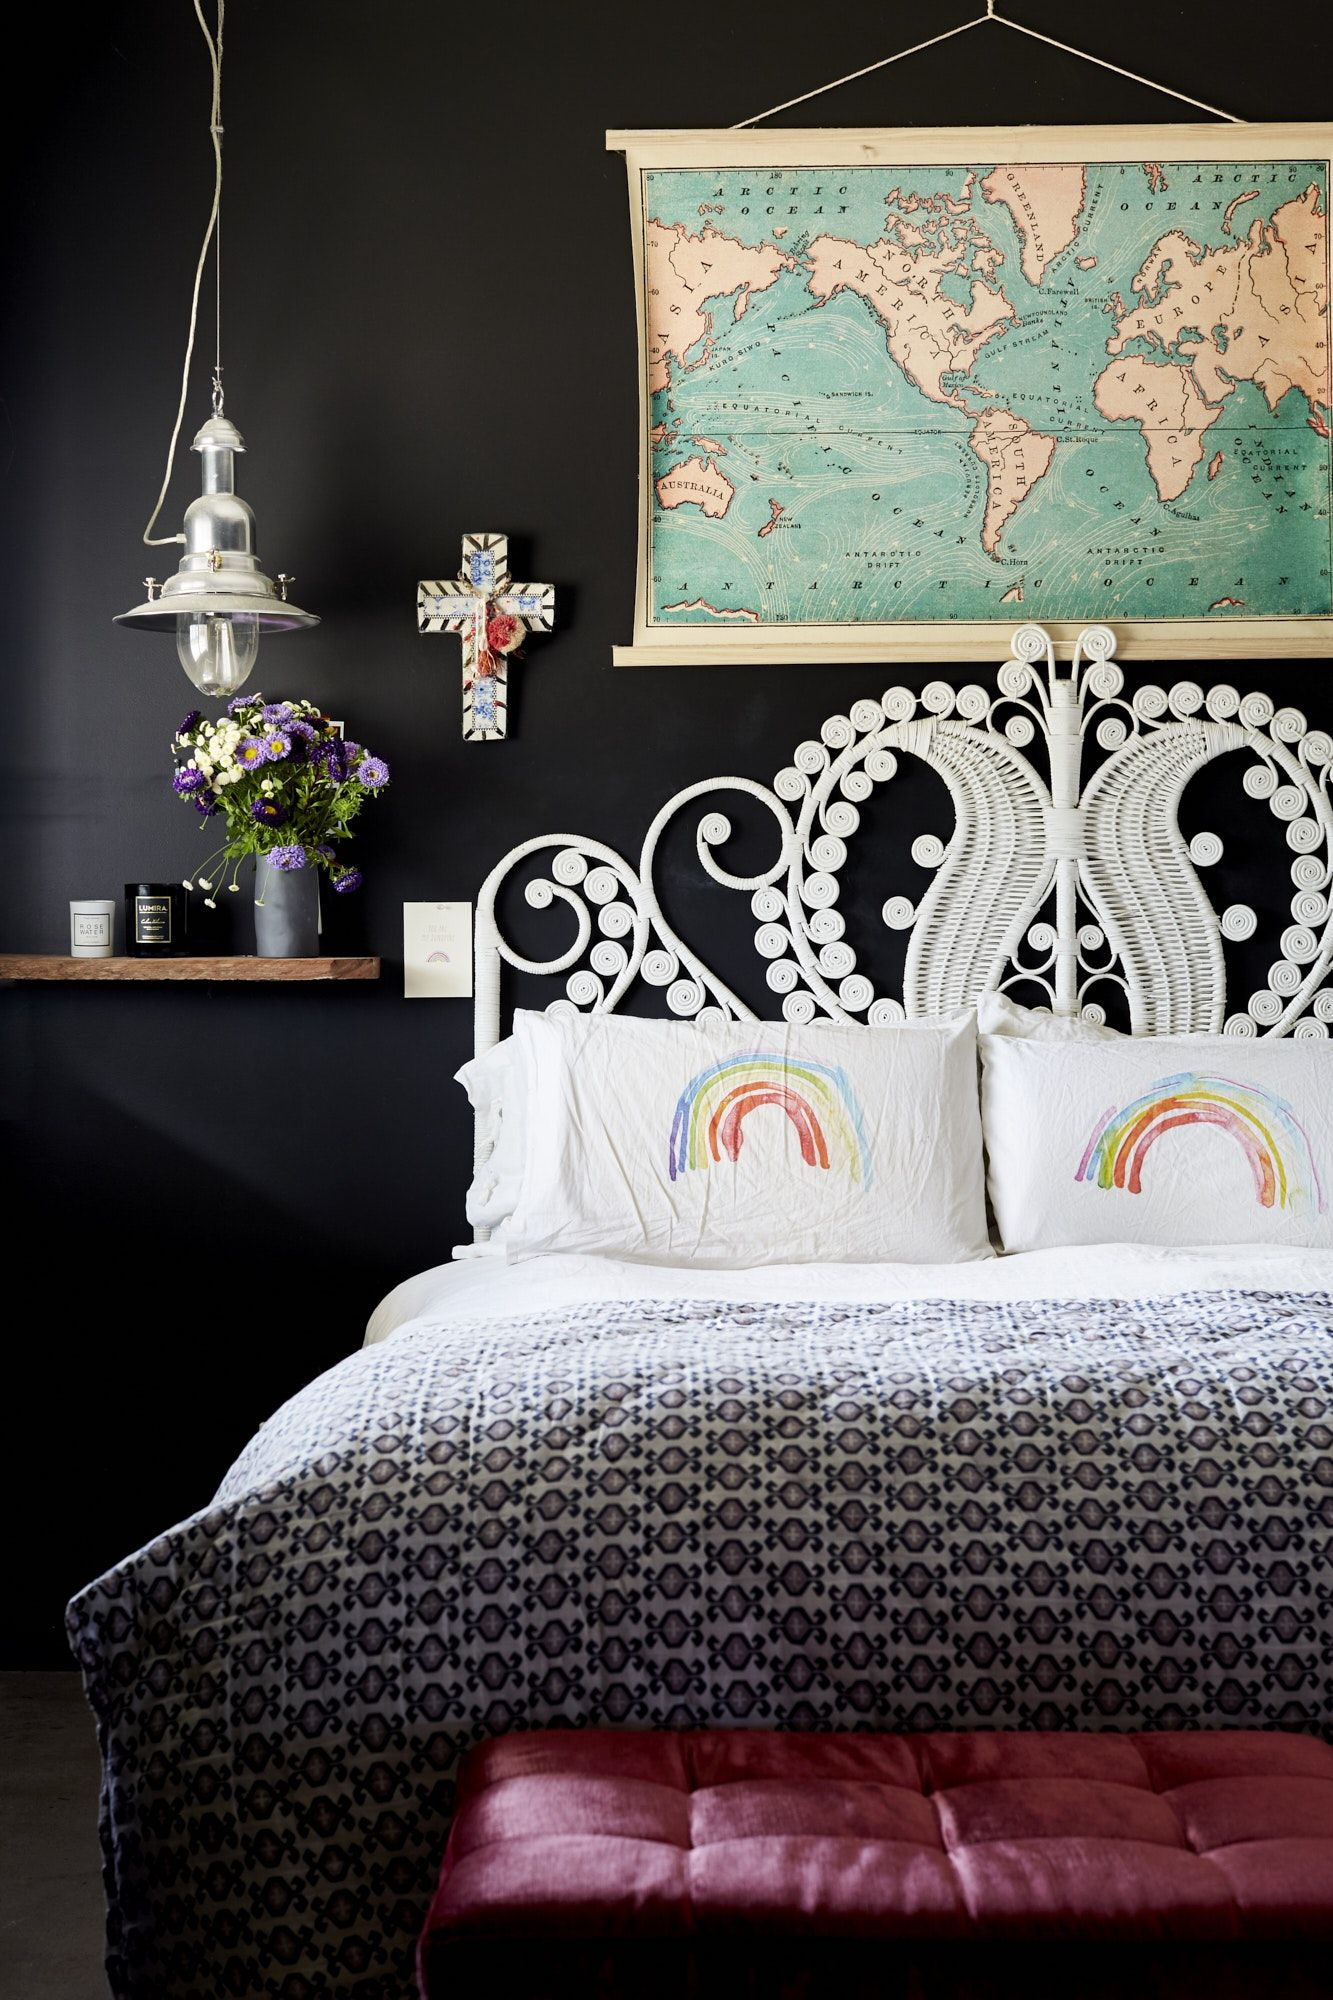 exquisite wicker bedroom furniture. We Dare You To Do Something Really Bold: Paint An Entire Room Black. Exquisite Wicker Bedroom Furniture N